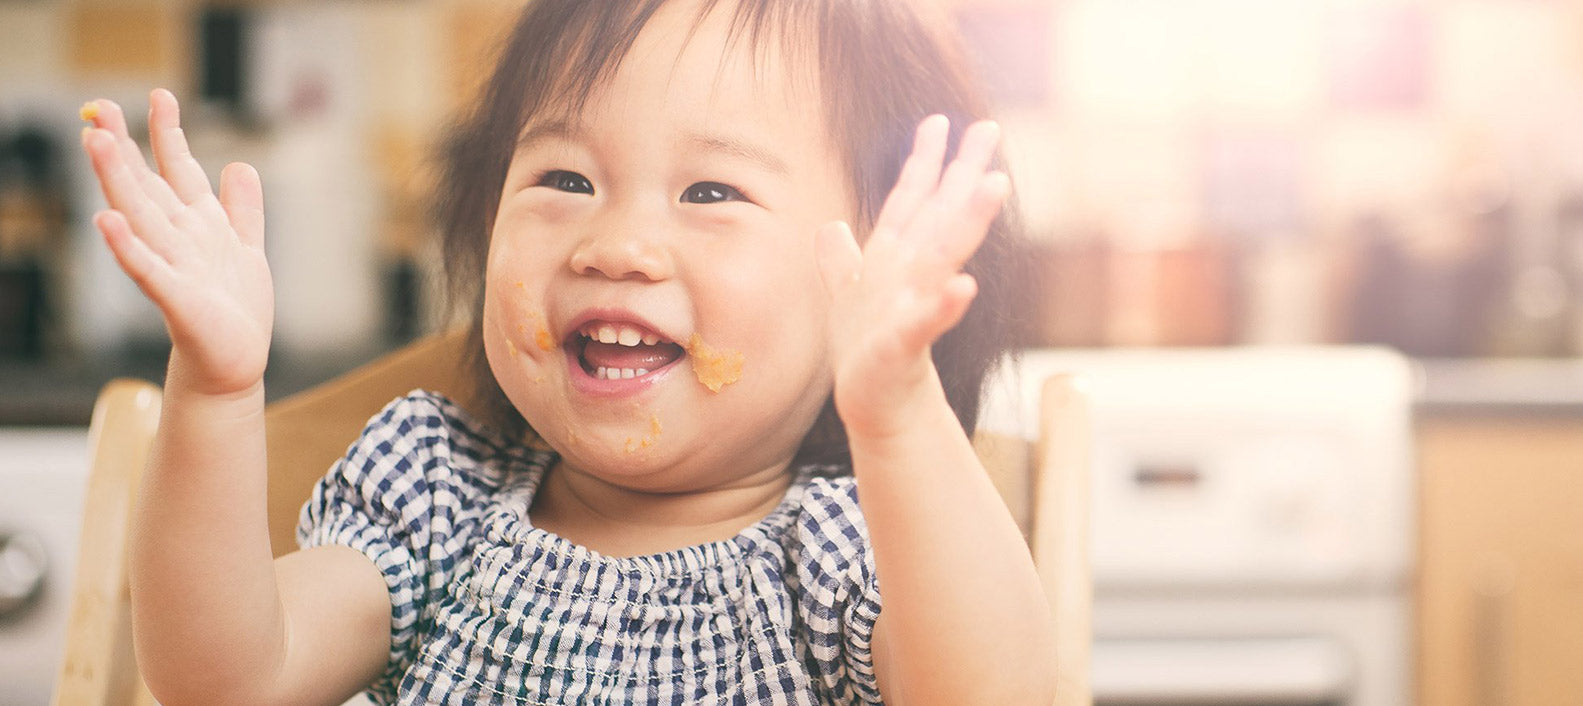 child with food on face smiling and holding up hands